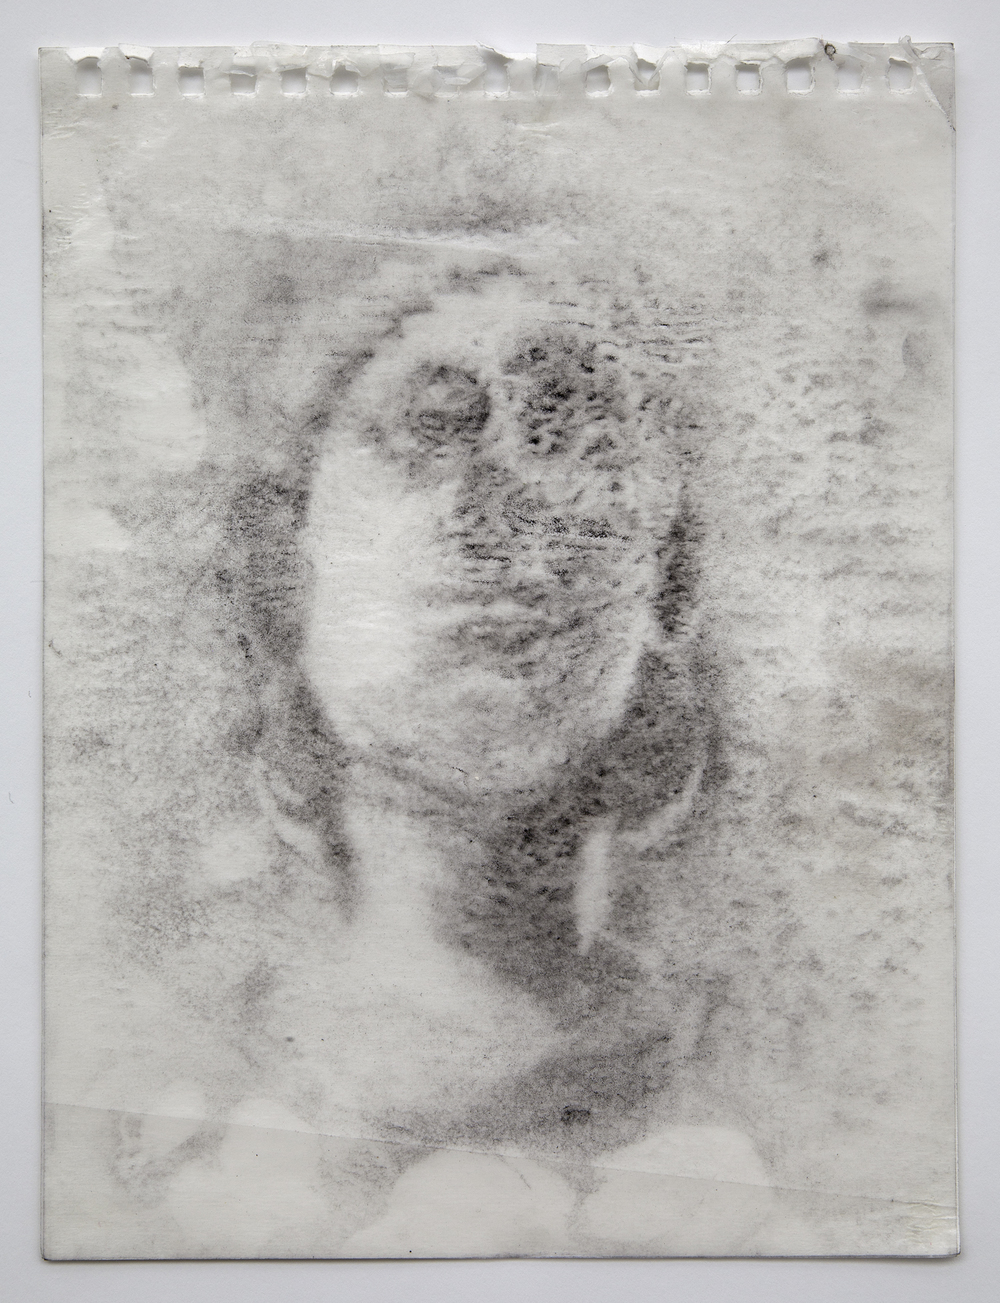 Interleaf Drawing (Roman Sculpture), 2013